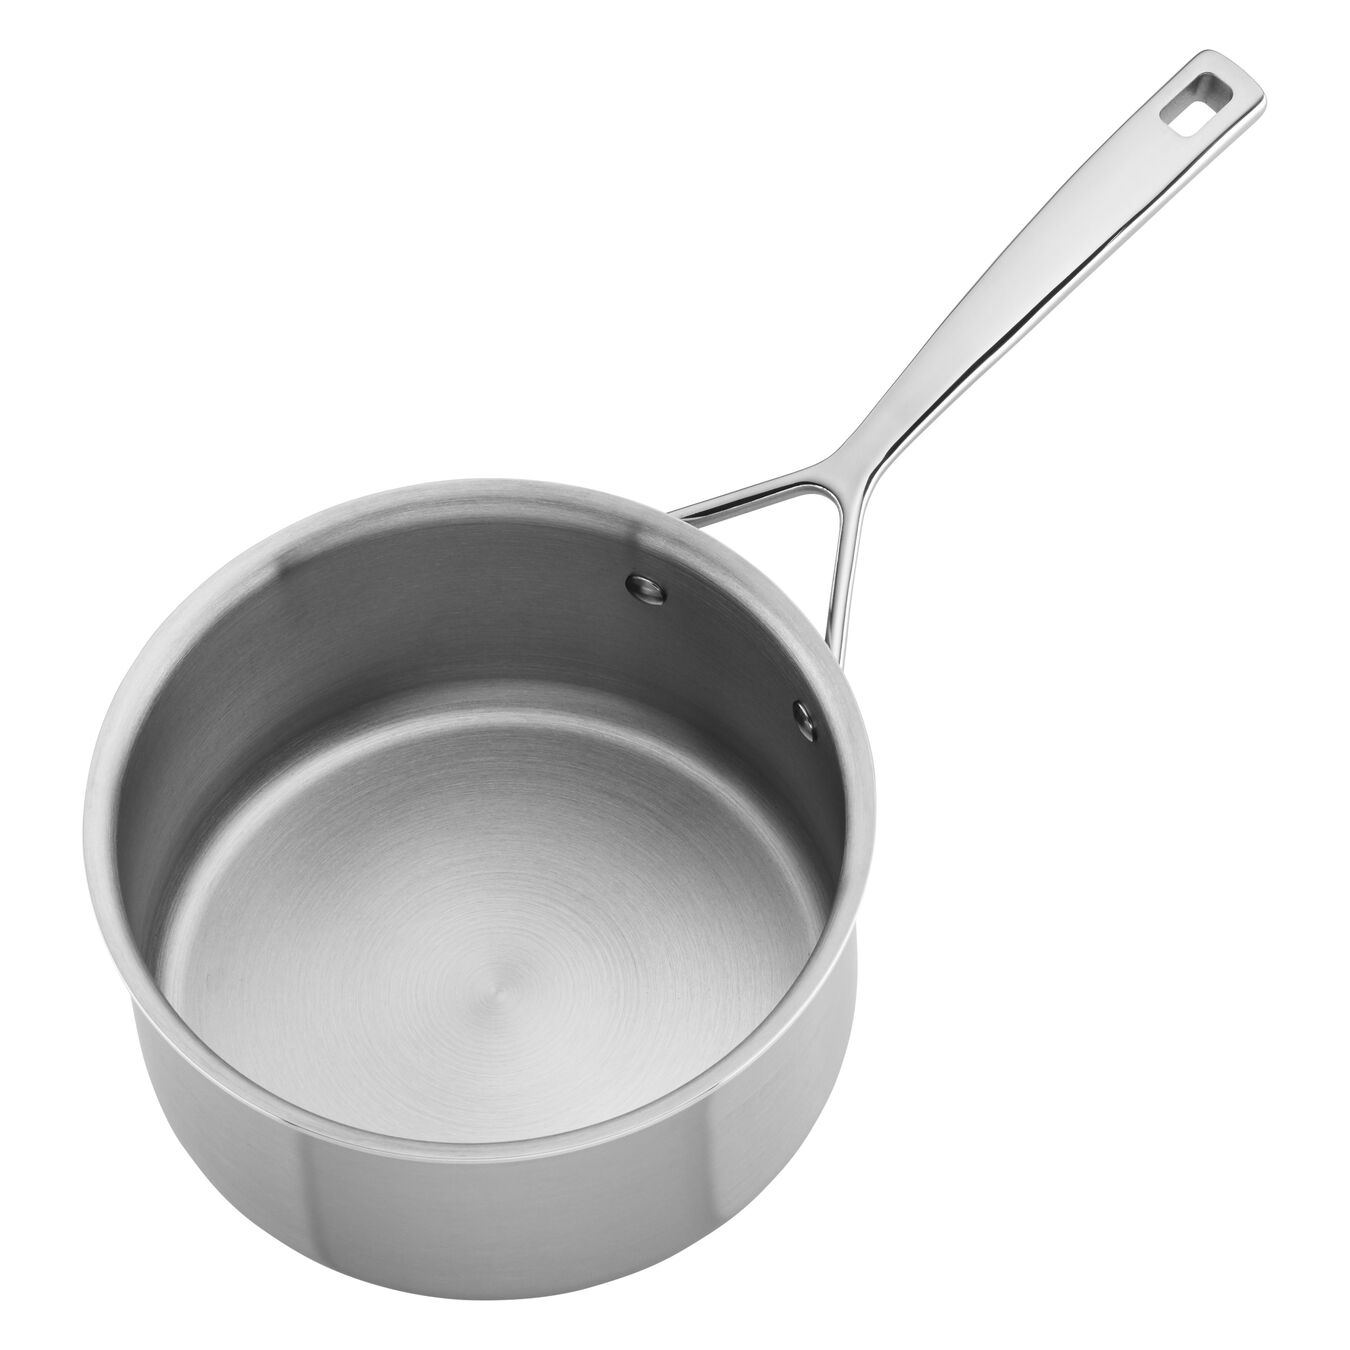 7 Piece 18/10 Stainless Steel Cookware set,,large 4